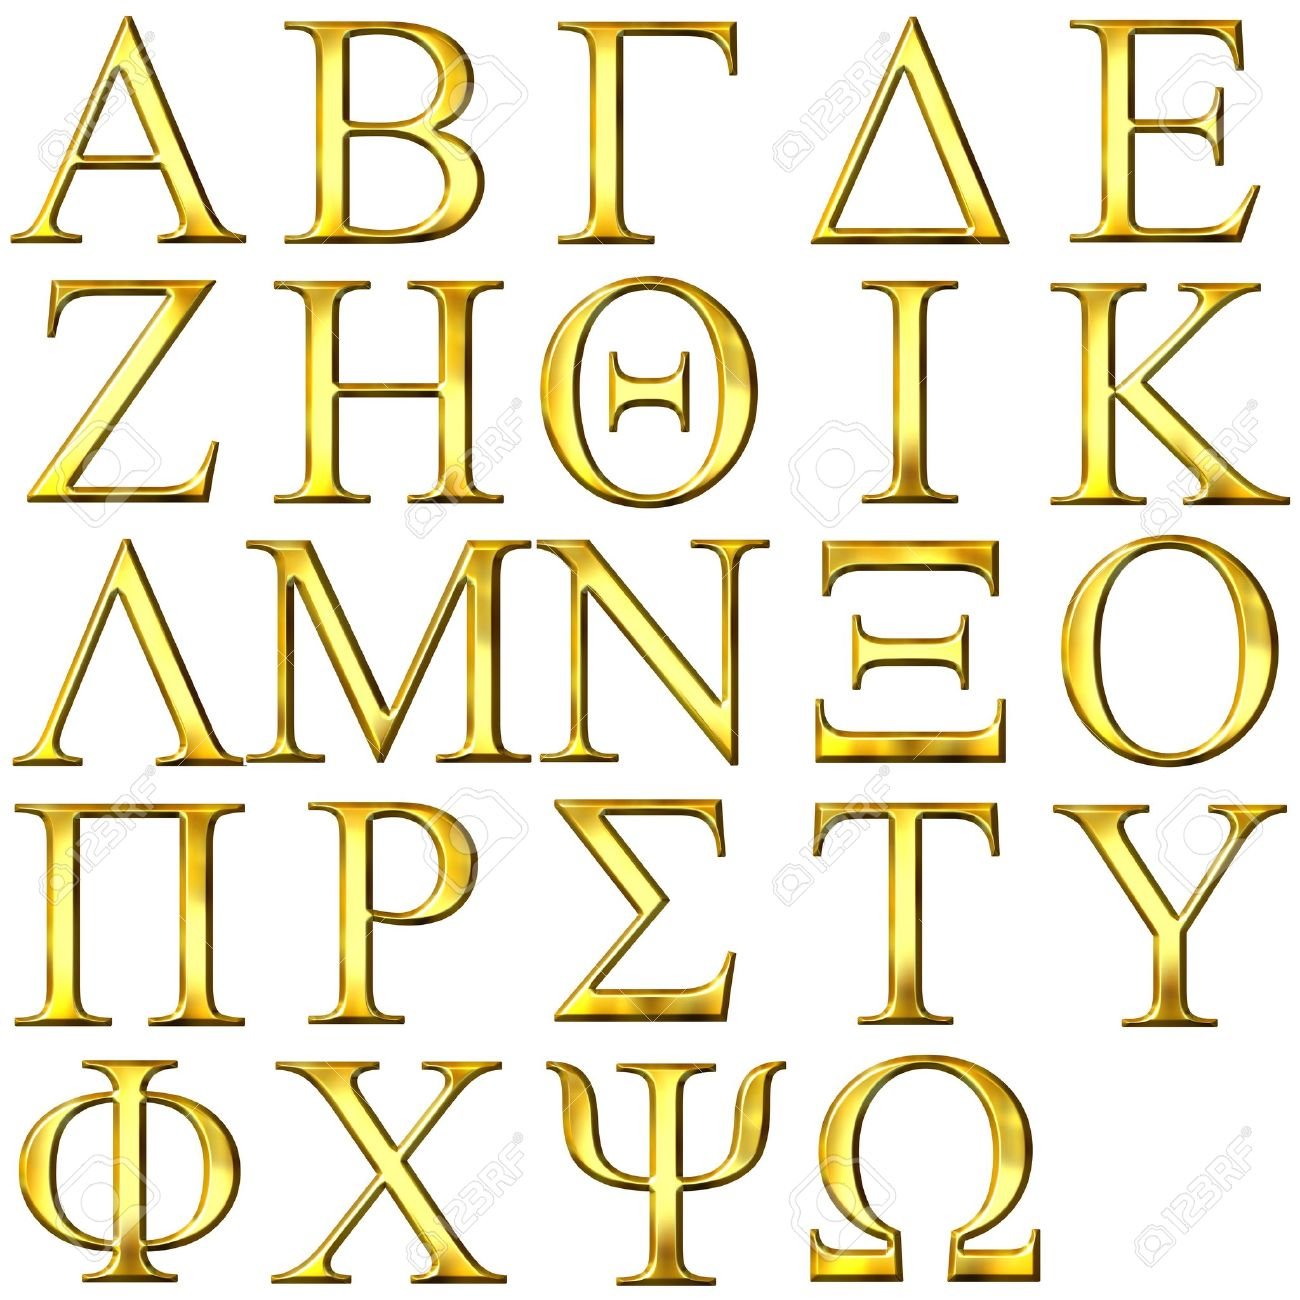 Greek character clipart png free library Greek alphabet clipart - ClipartFest png free library